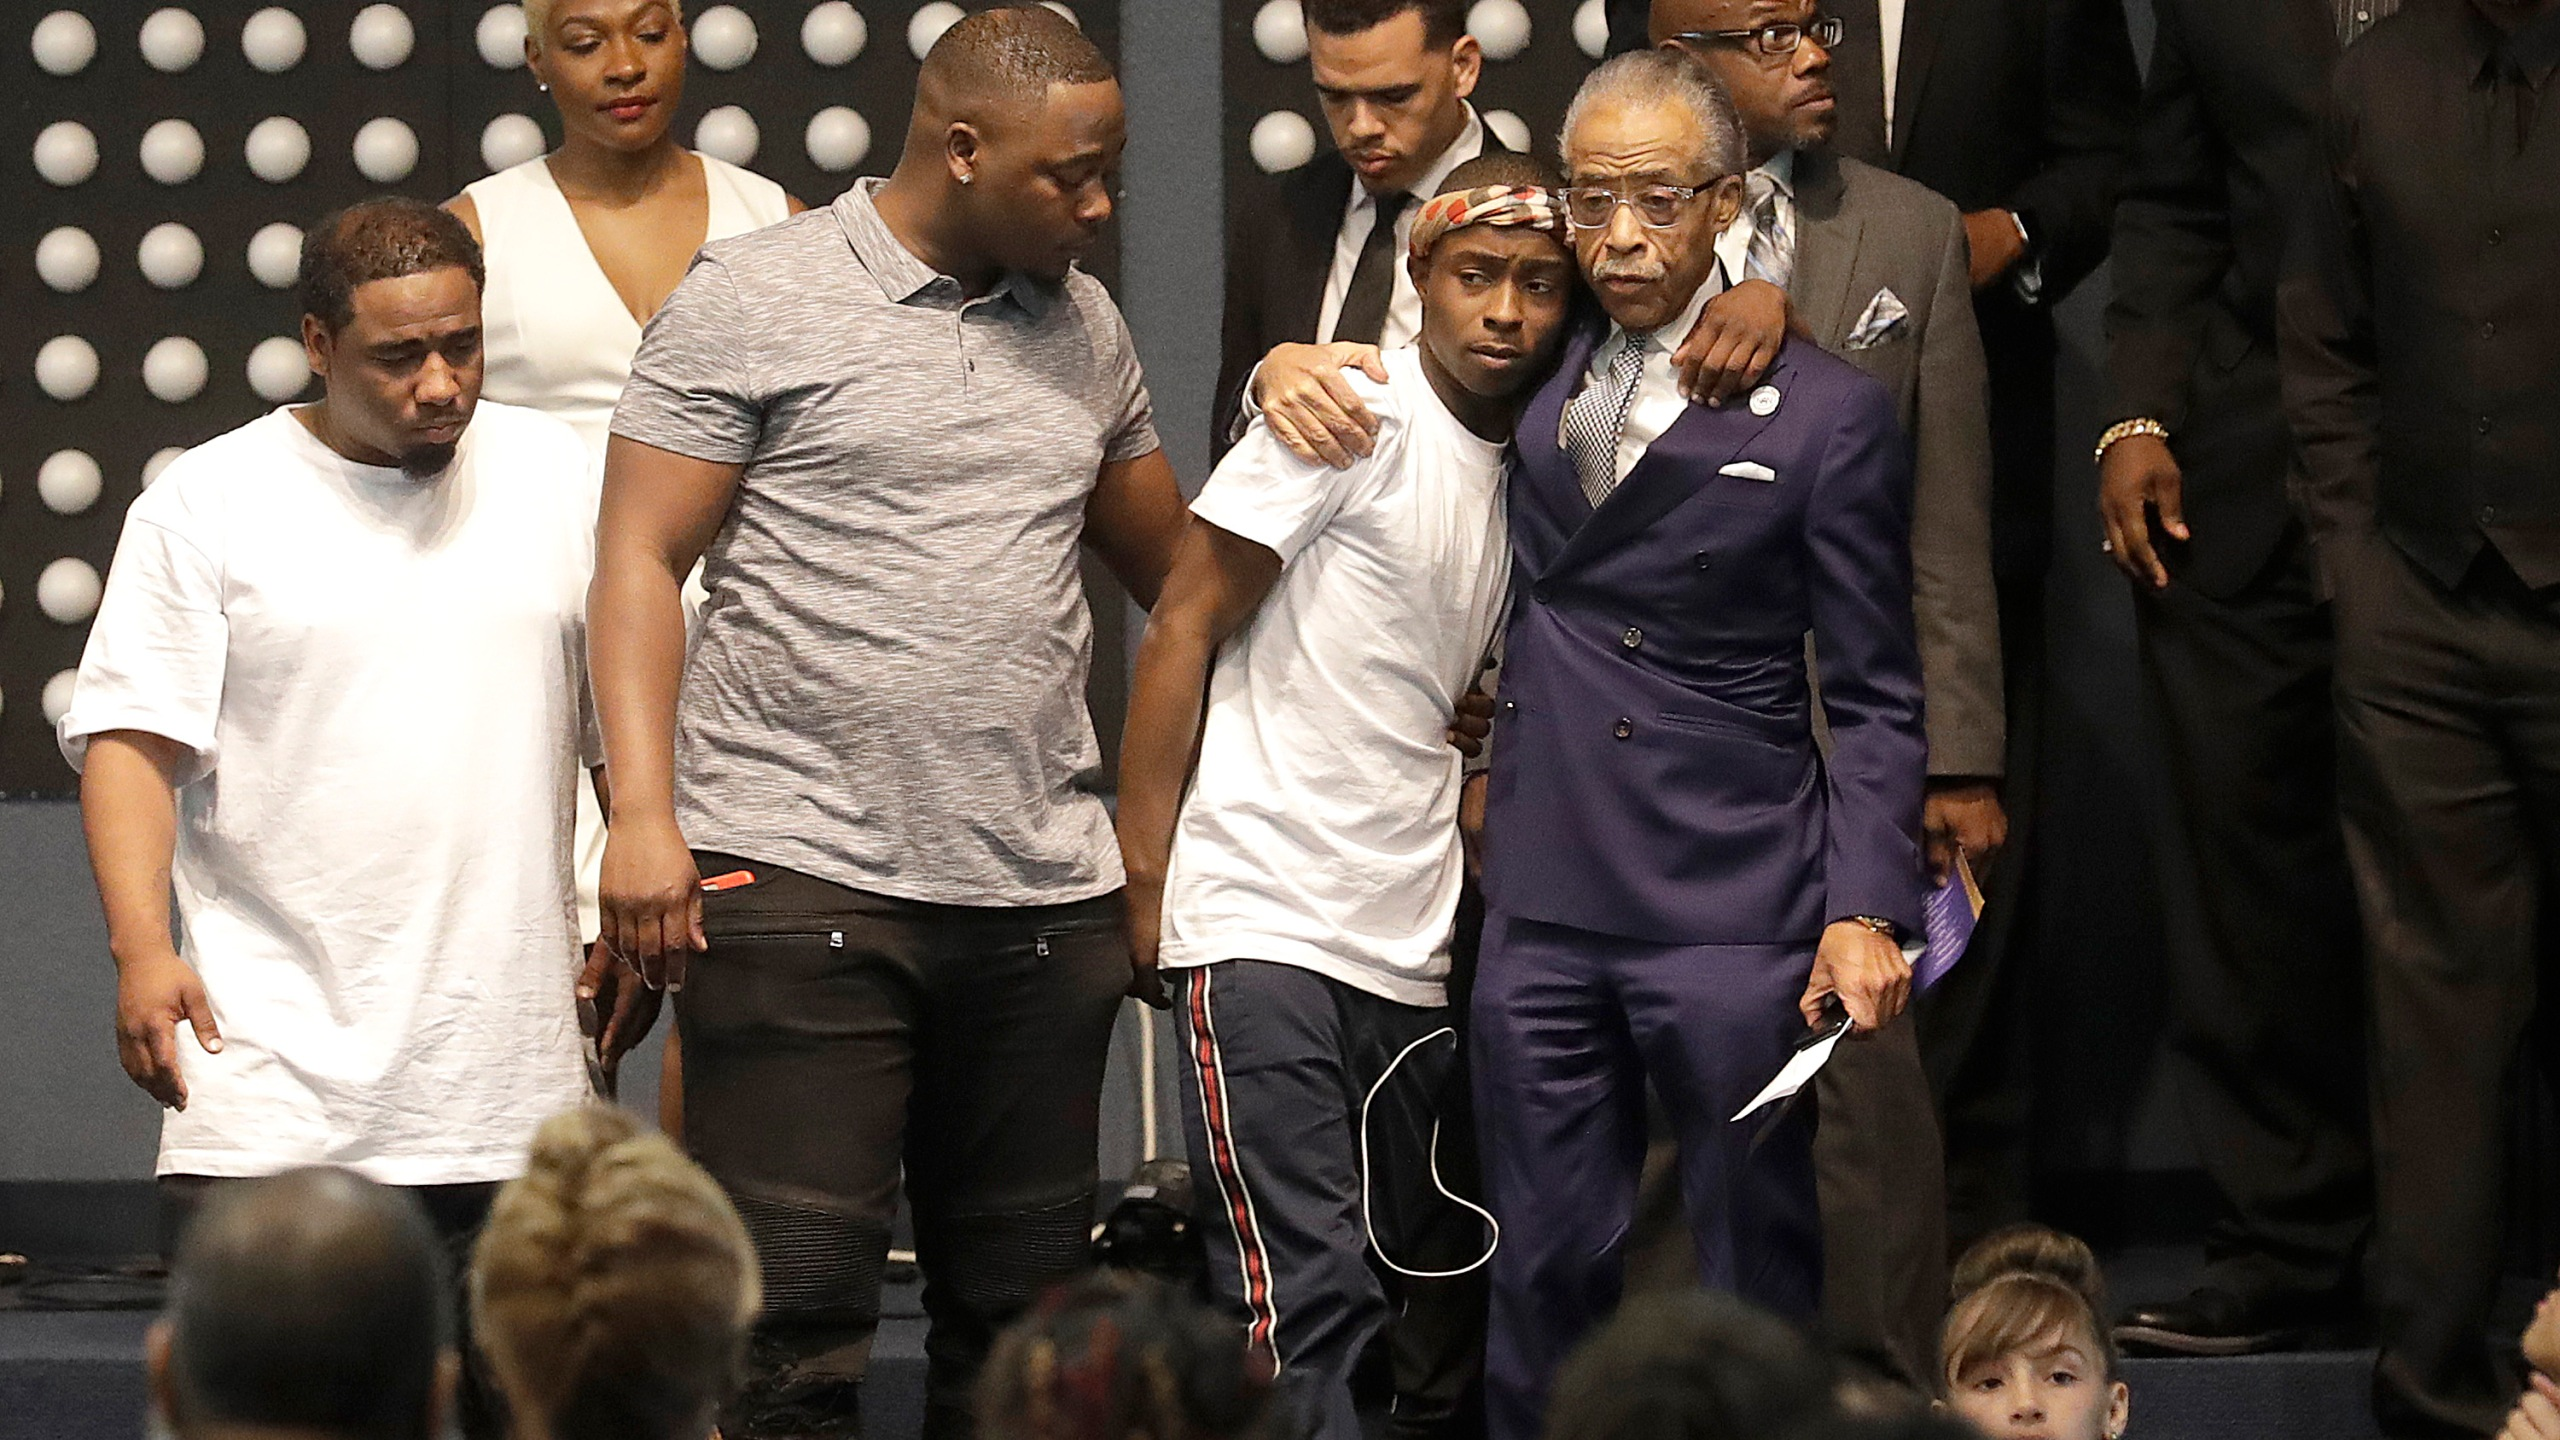 Rev. Al Sharpton, center right, hugs Stevante Clark during the funeral services for his brother, Stephon Clark, at Bayside Of South Sacramento Church on March 29, 2018. (Credit: Jeff Chiu-Pool/Getty Images)